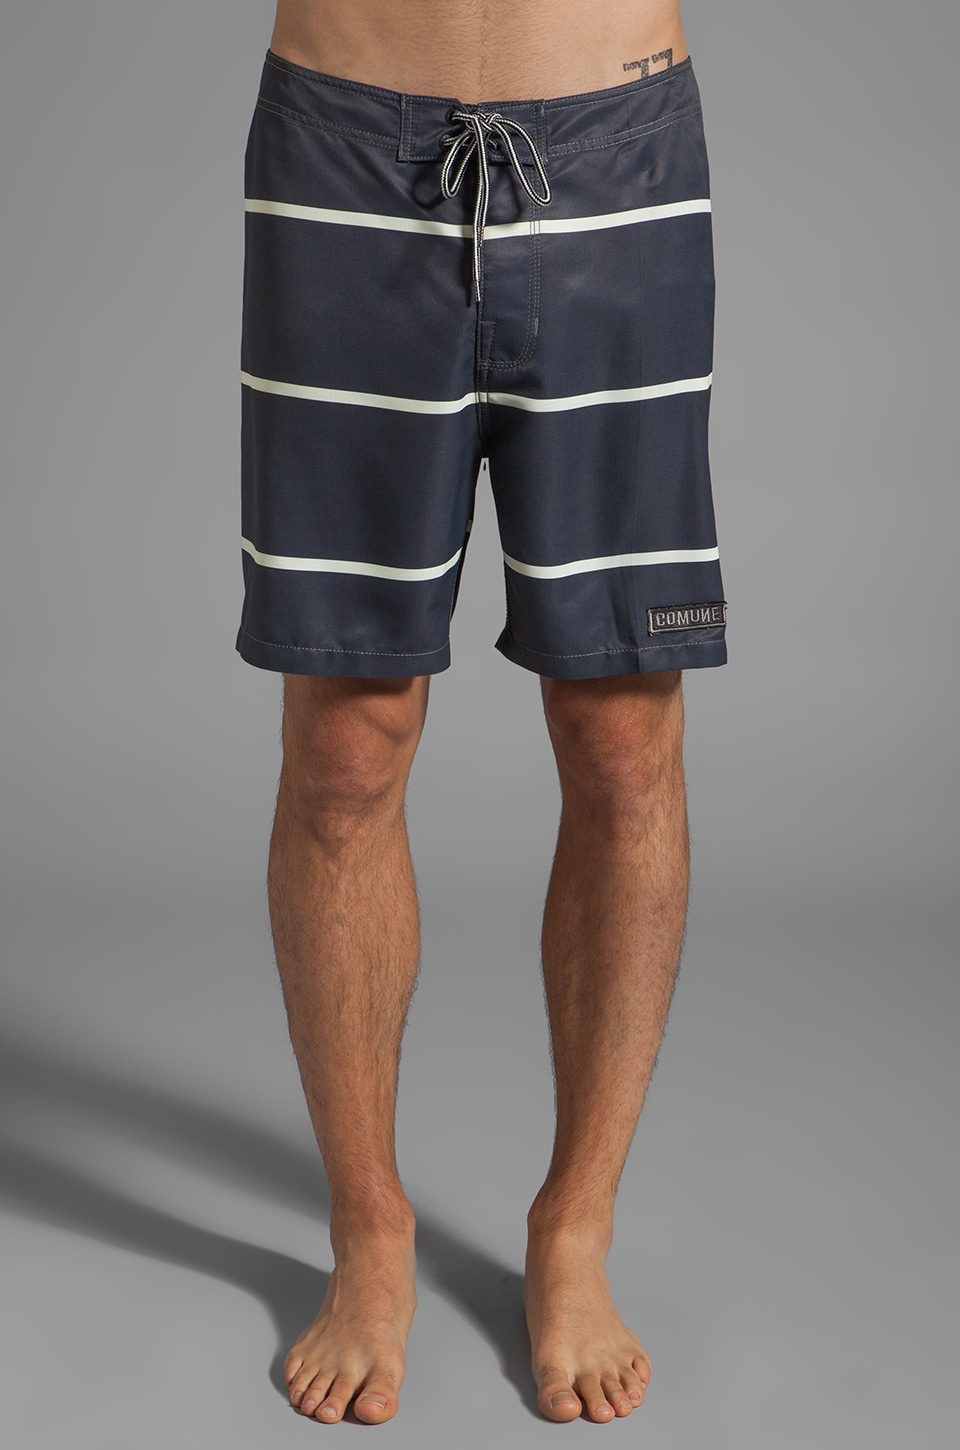 COMUNE Nelson Boardshort in Navy Stripe